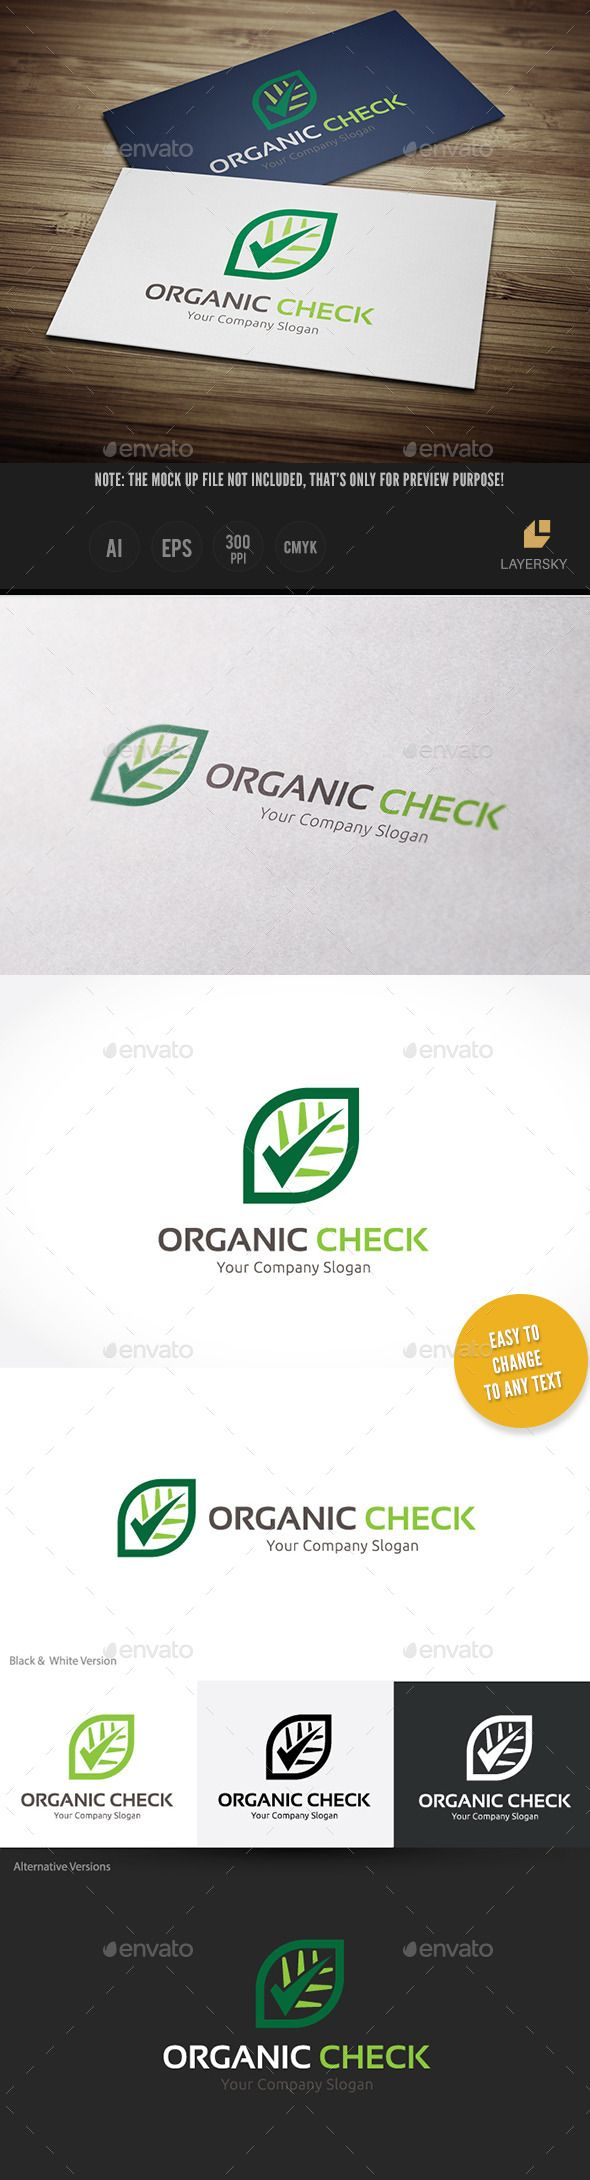 37 best Food logos images on Pinterest | Plantillas de logotipo ...